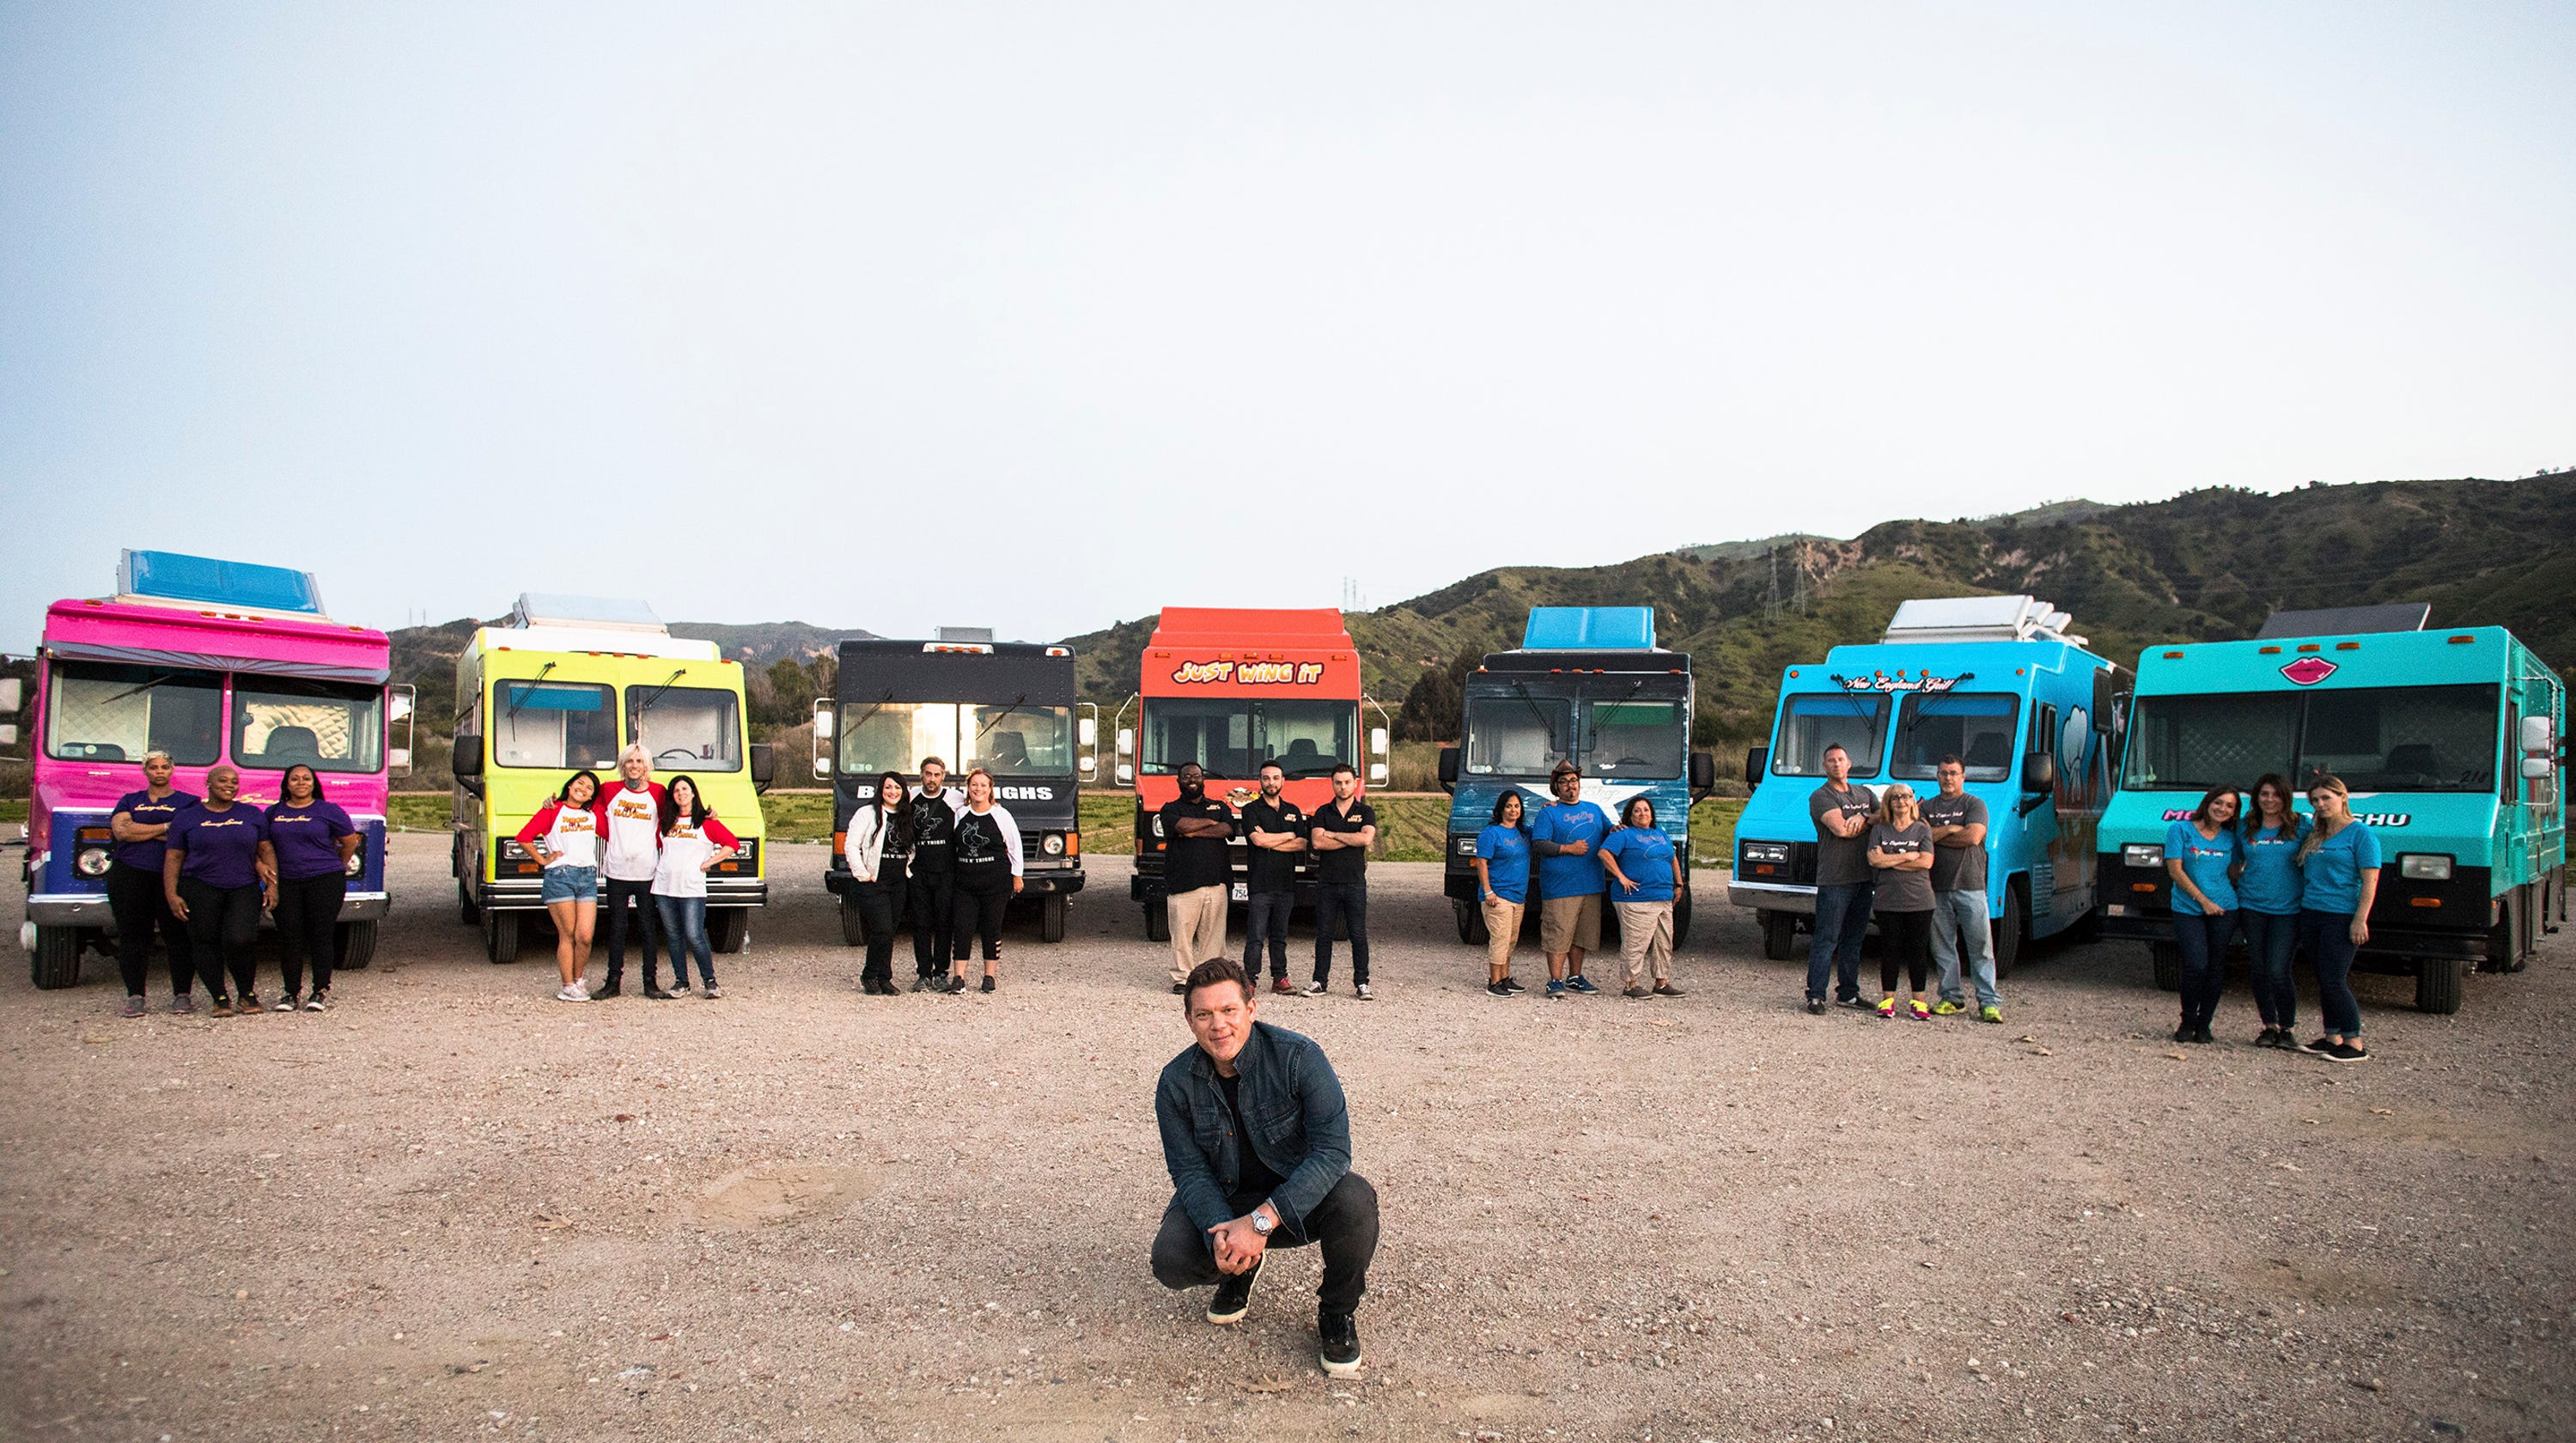 How To Apply For The Great Food Truck Race